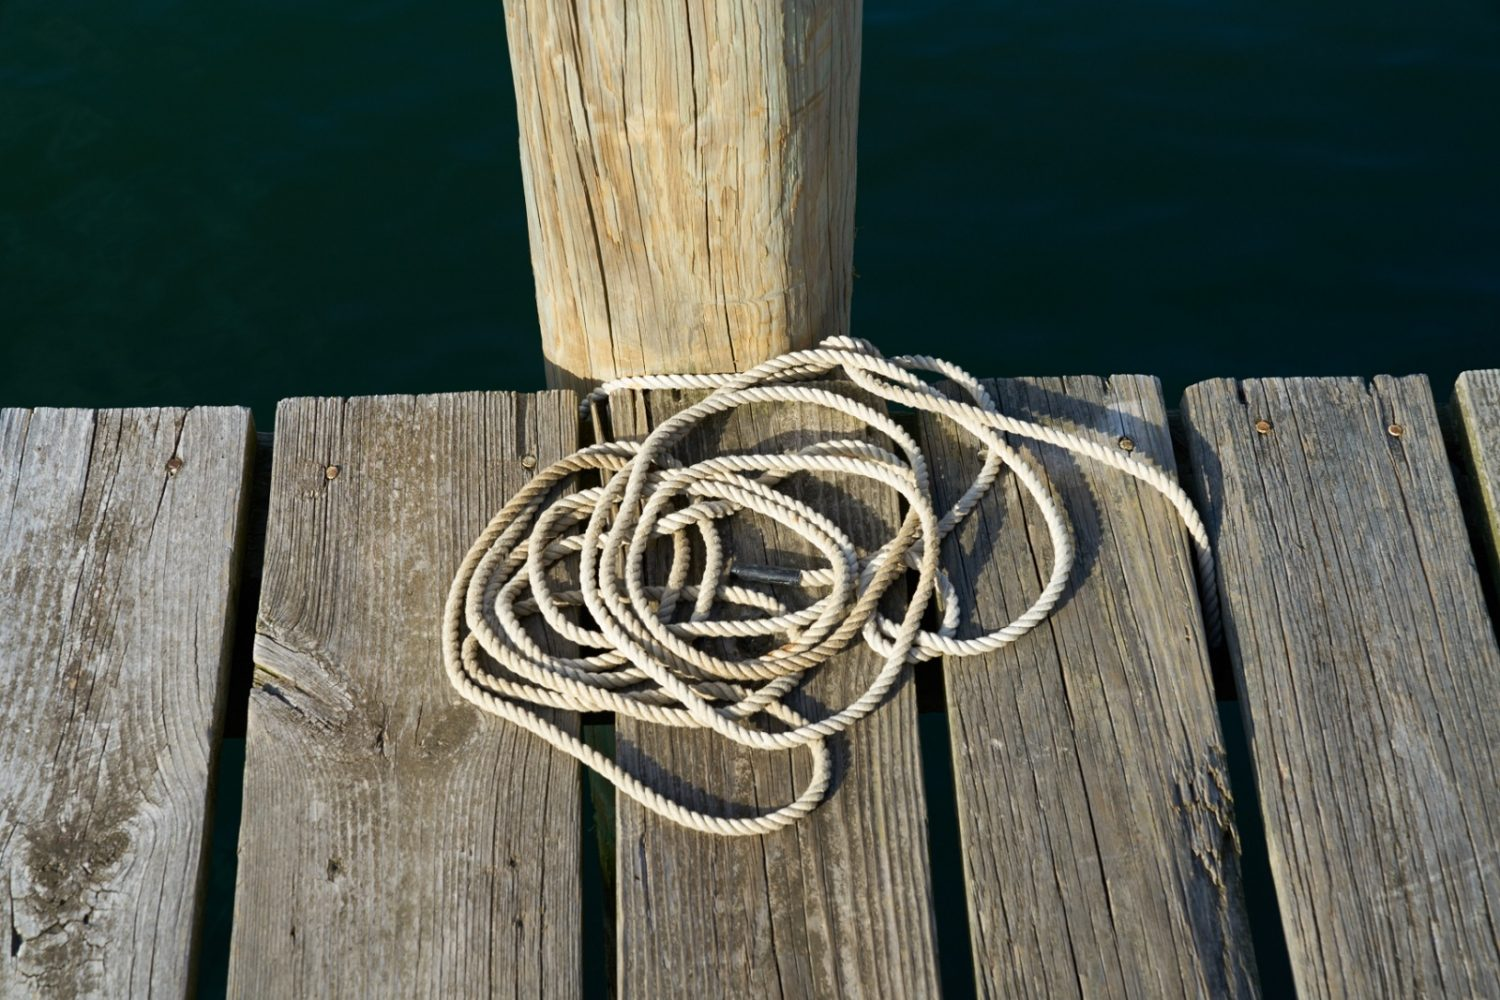 Nautical rope on dock